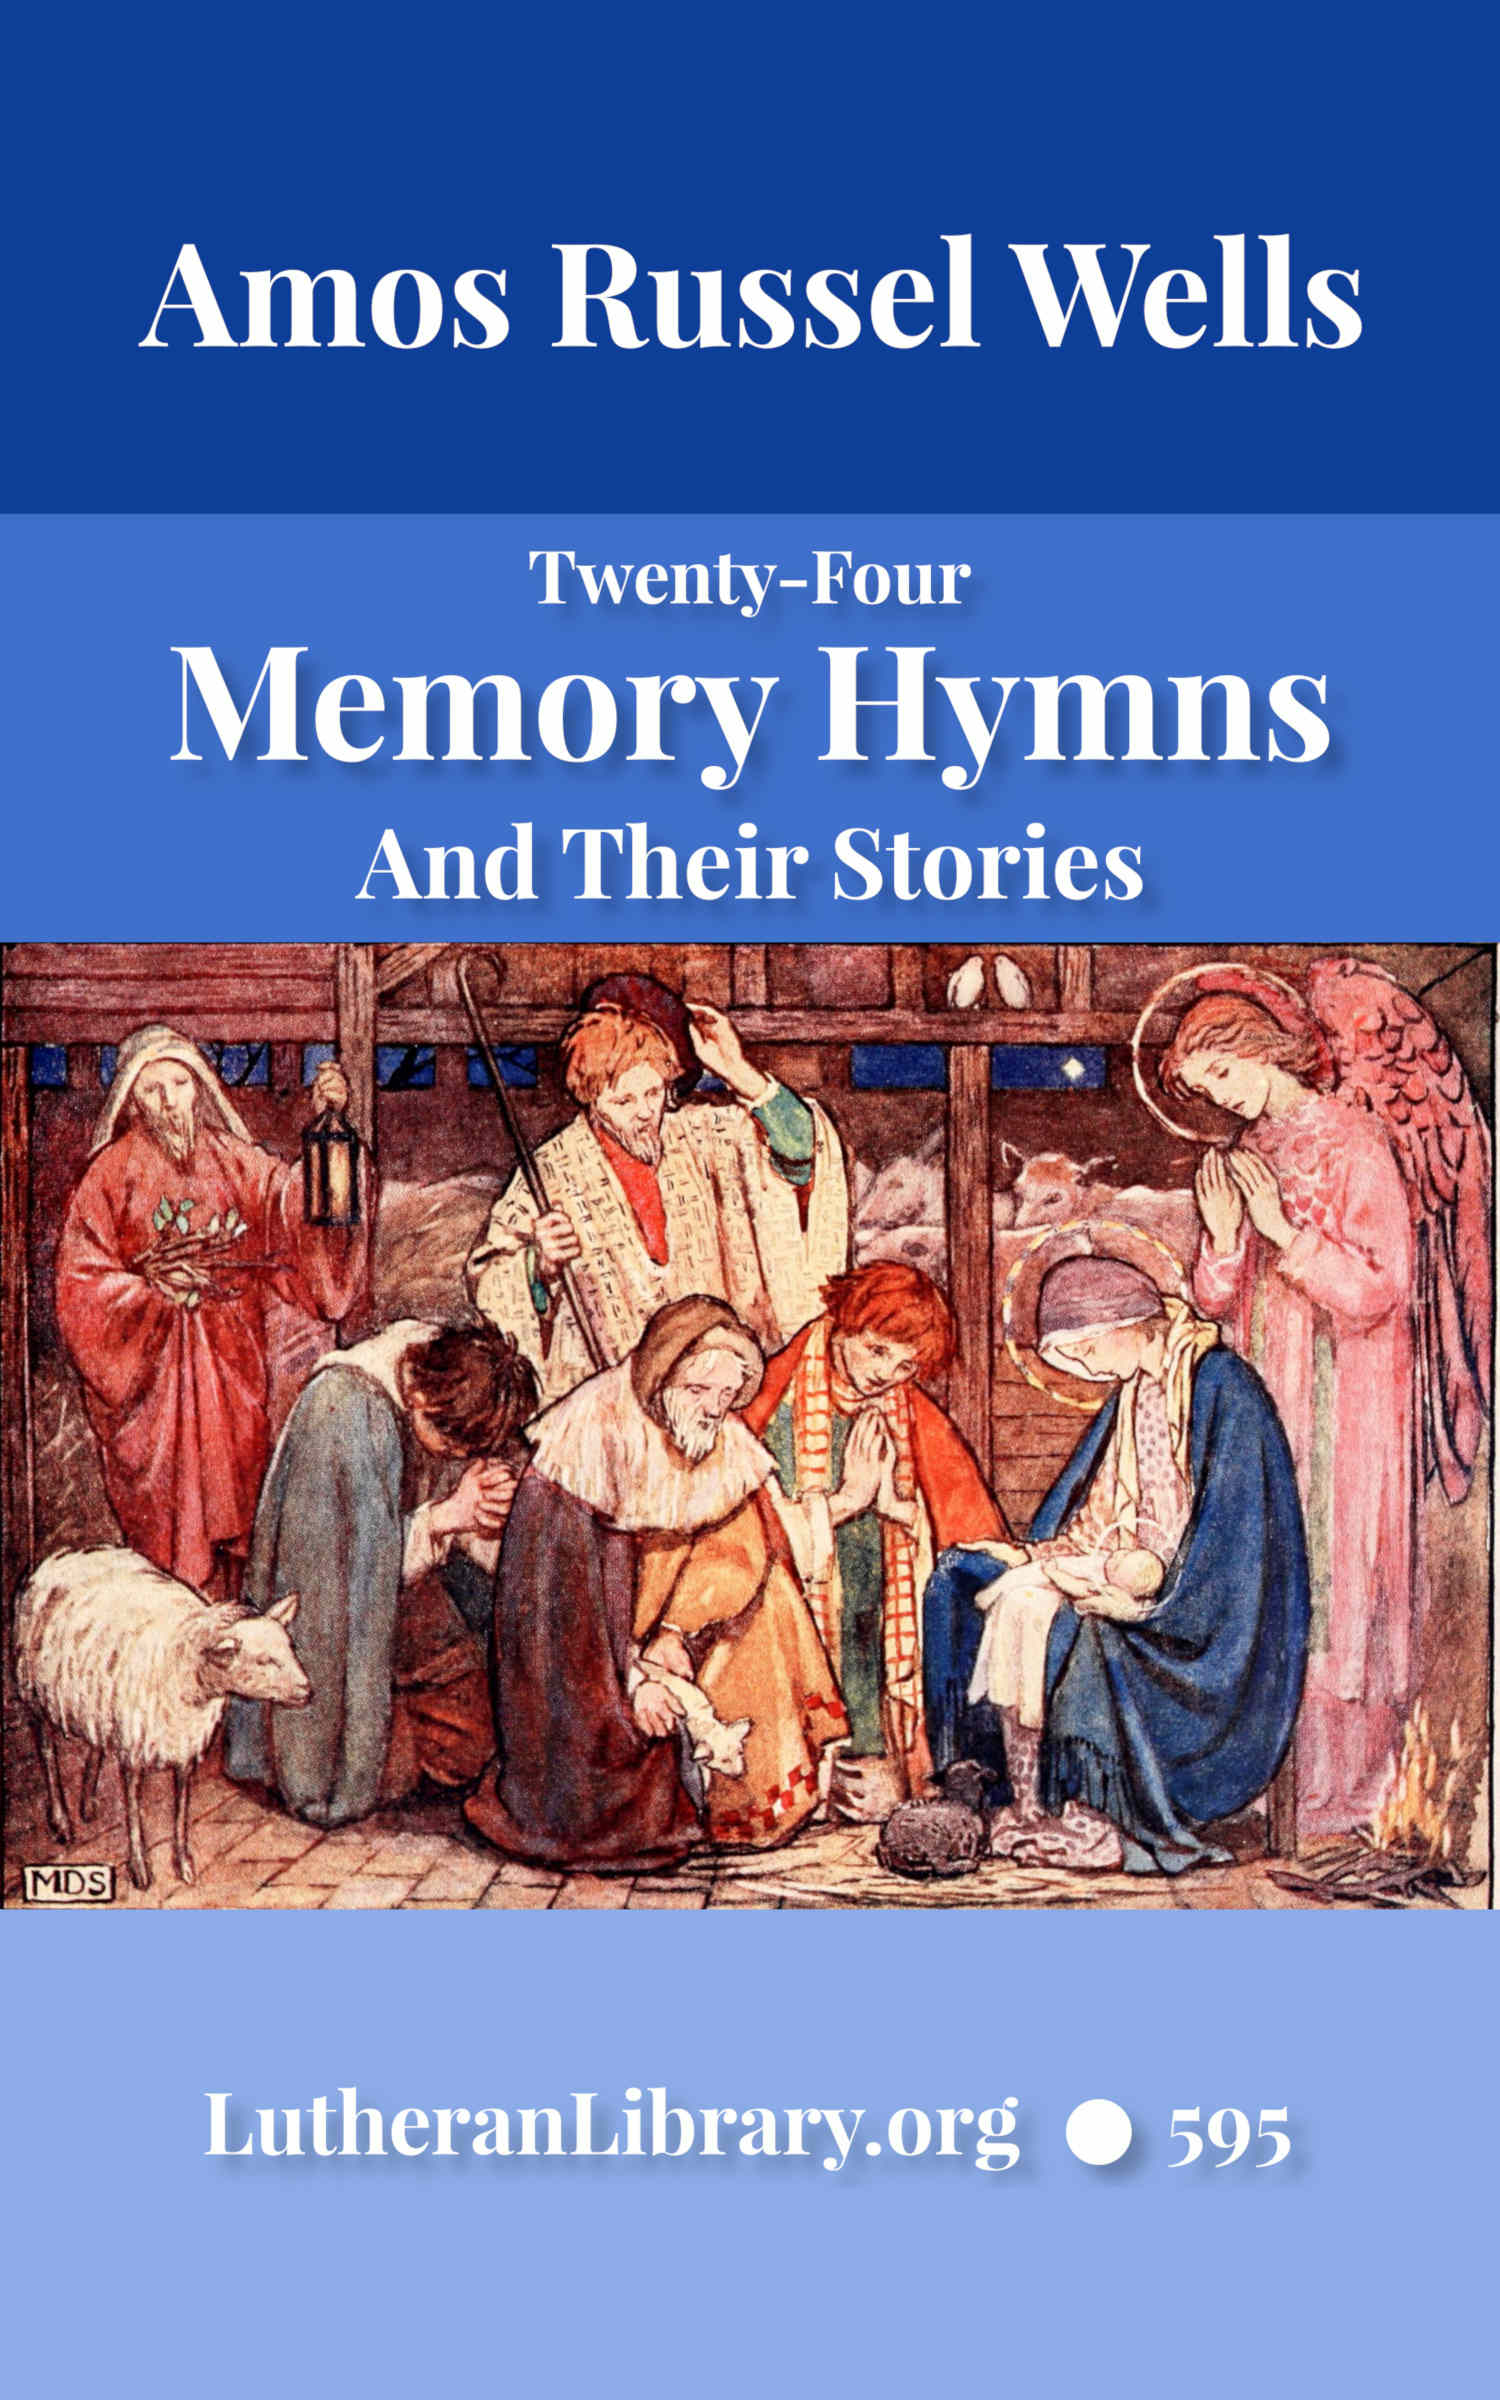 Twenty-four Memory Hymns And Their Stories by Amos Russel Wells